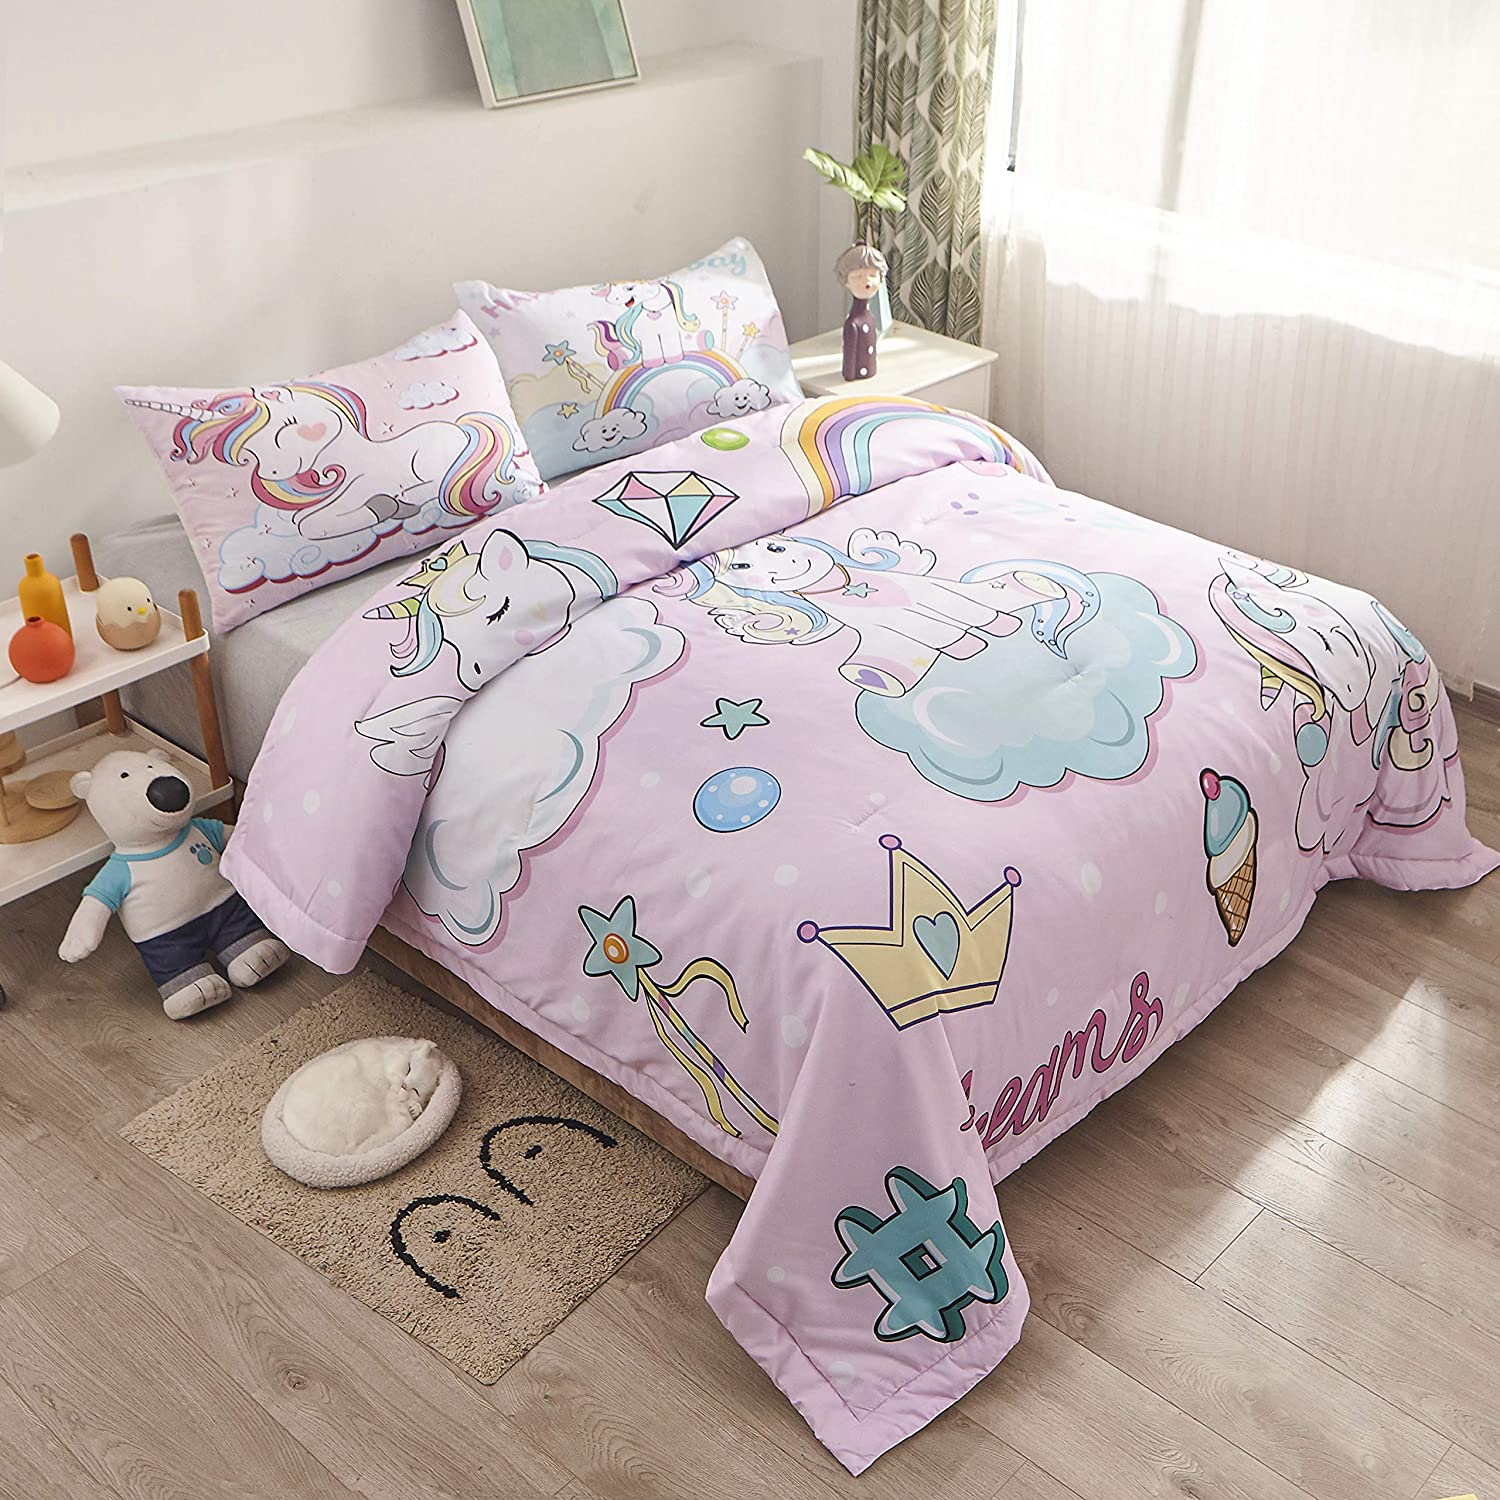 Comforter x 1 Pillowcase x 1 69x87 Inch Pink Blue Purple White Scales Sliver Line Quilt Sets Bedspread SweetDreaming Kids Mermaid Scale Twin Size Comforter Sets Girls Colorful Bedding Sets